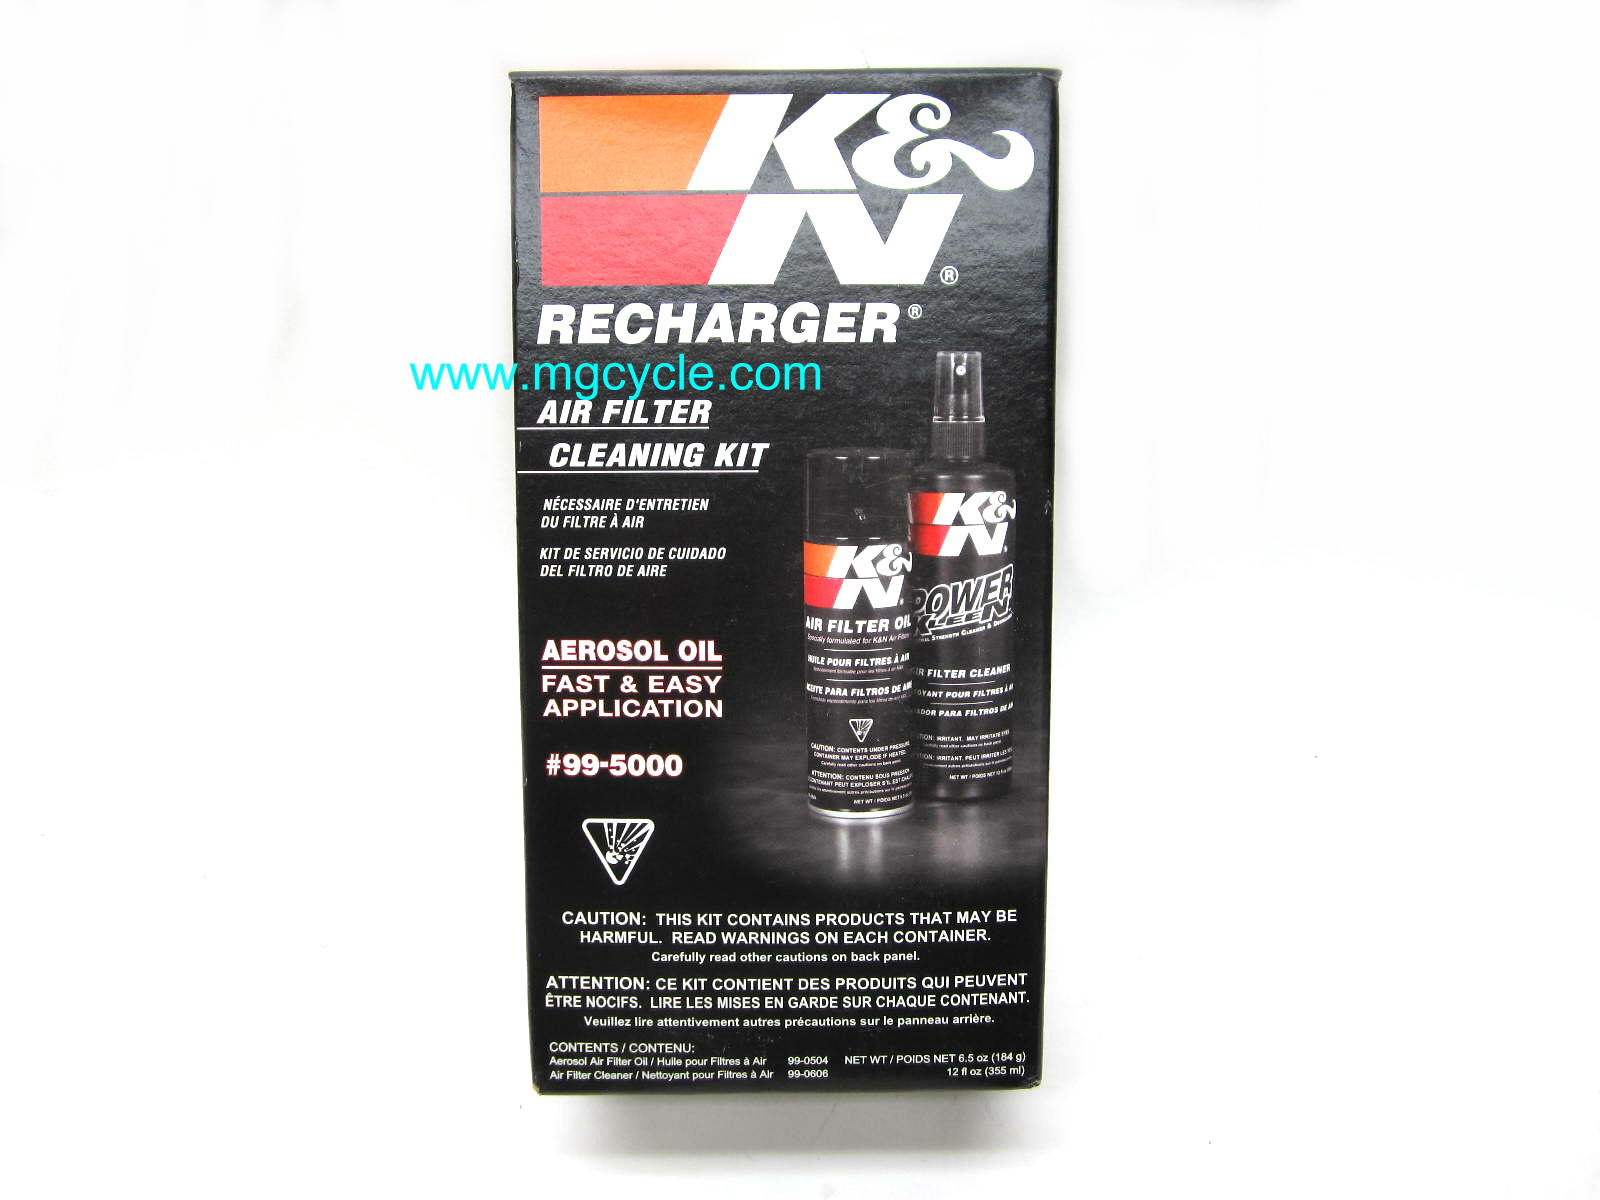 K&N Filter Care Kit, air filter cleaning and oiling solutions